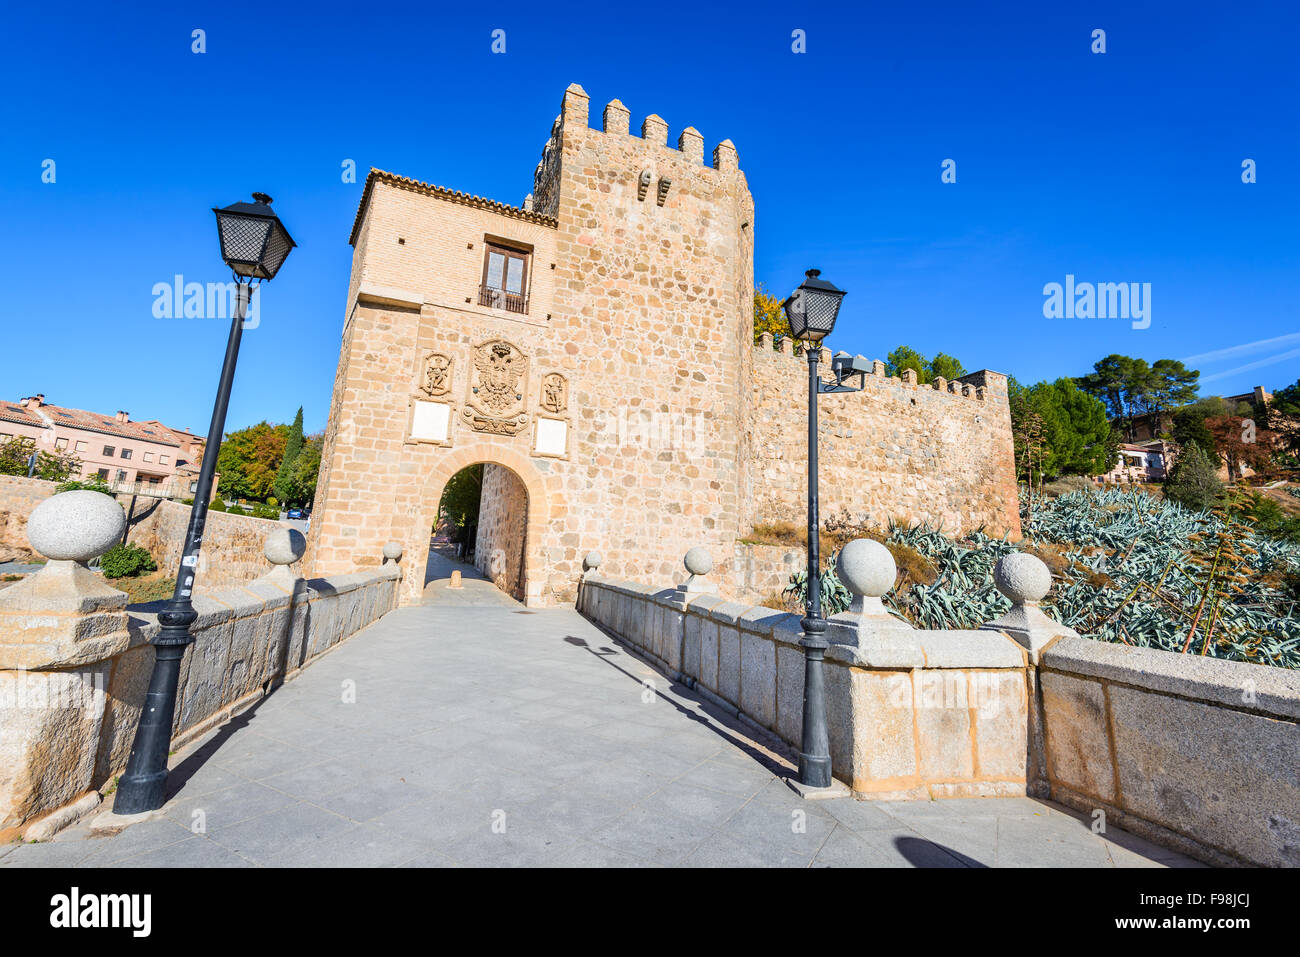 Toledo, Spain. Puente de San Martin is a medieval bridge across the river Tajo in Toledo, Spain. - Stock Image